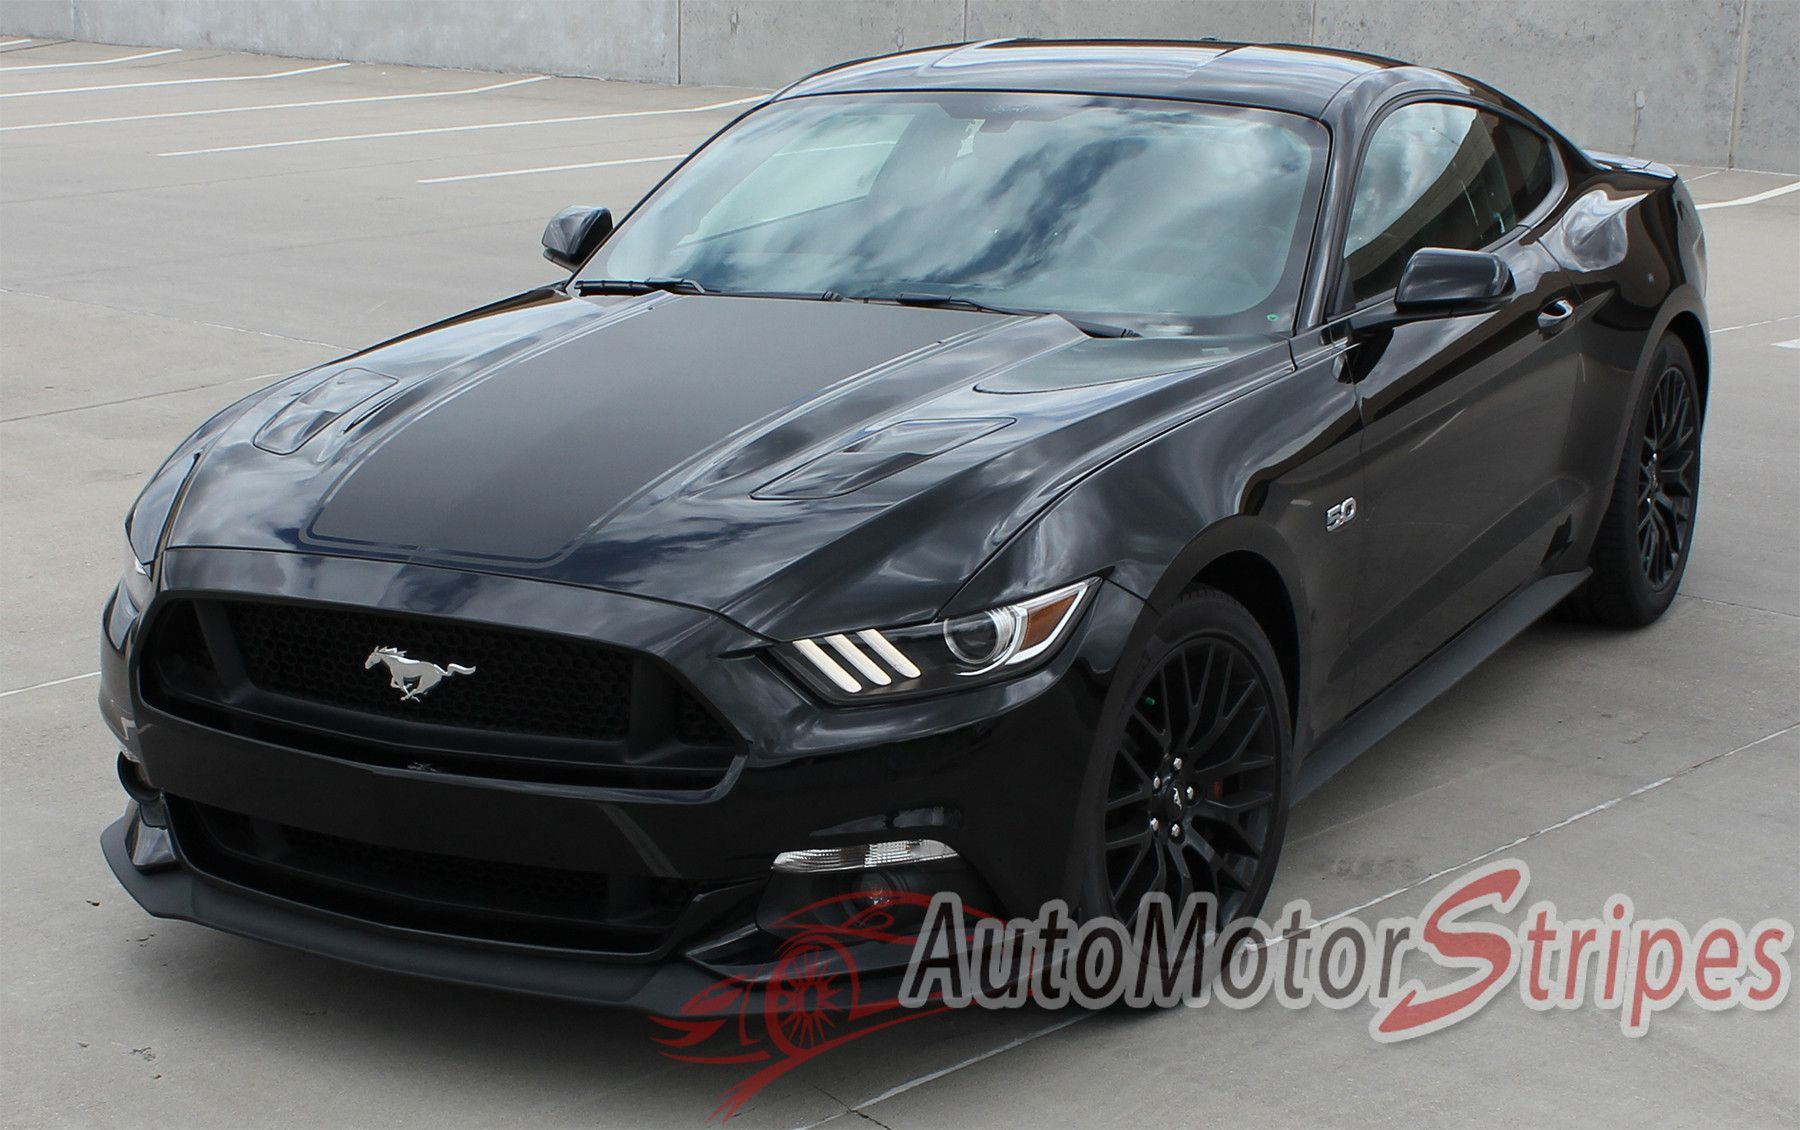 2017 Ford Mustang Super Snake Mega Hood Mohawk Center